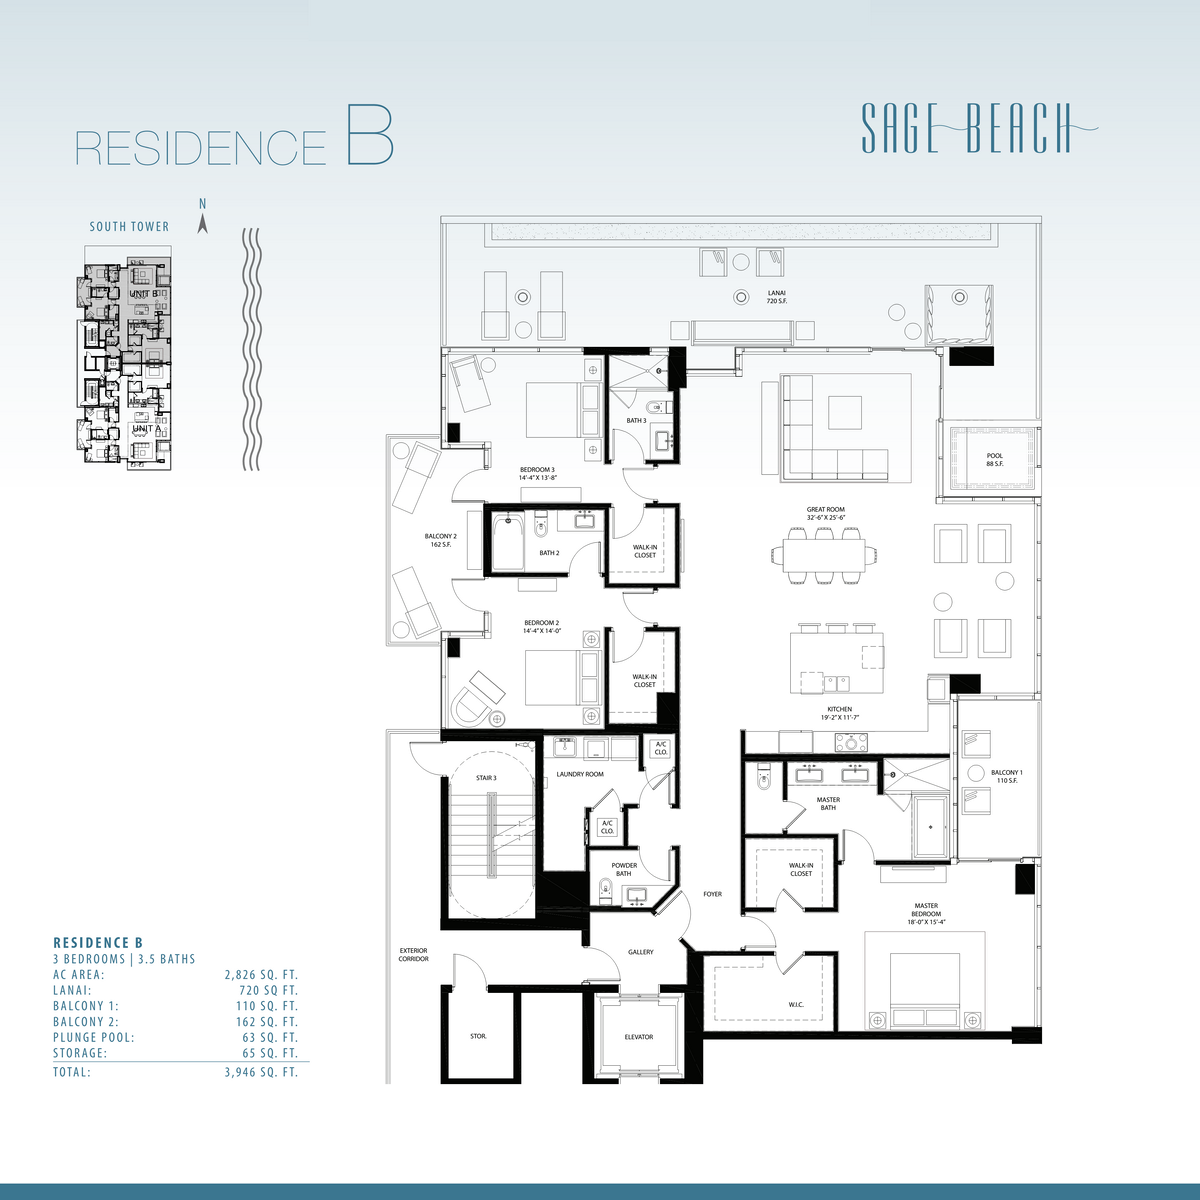 Sage floor plan home fatare for Sage floor plan